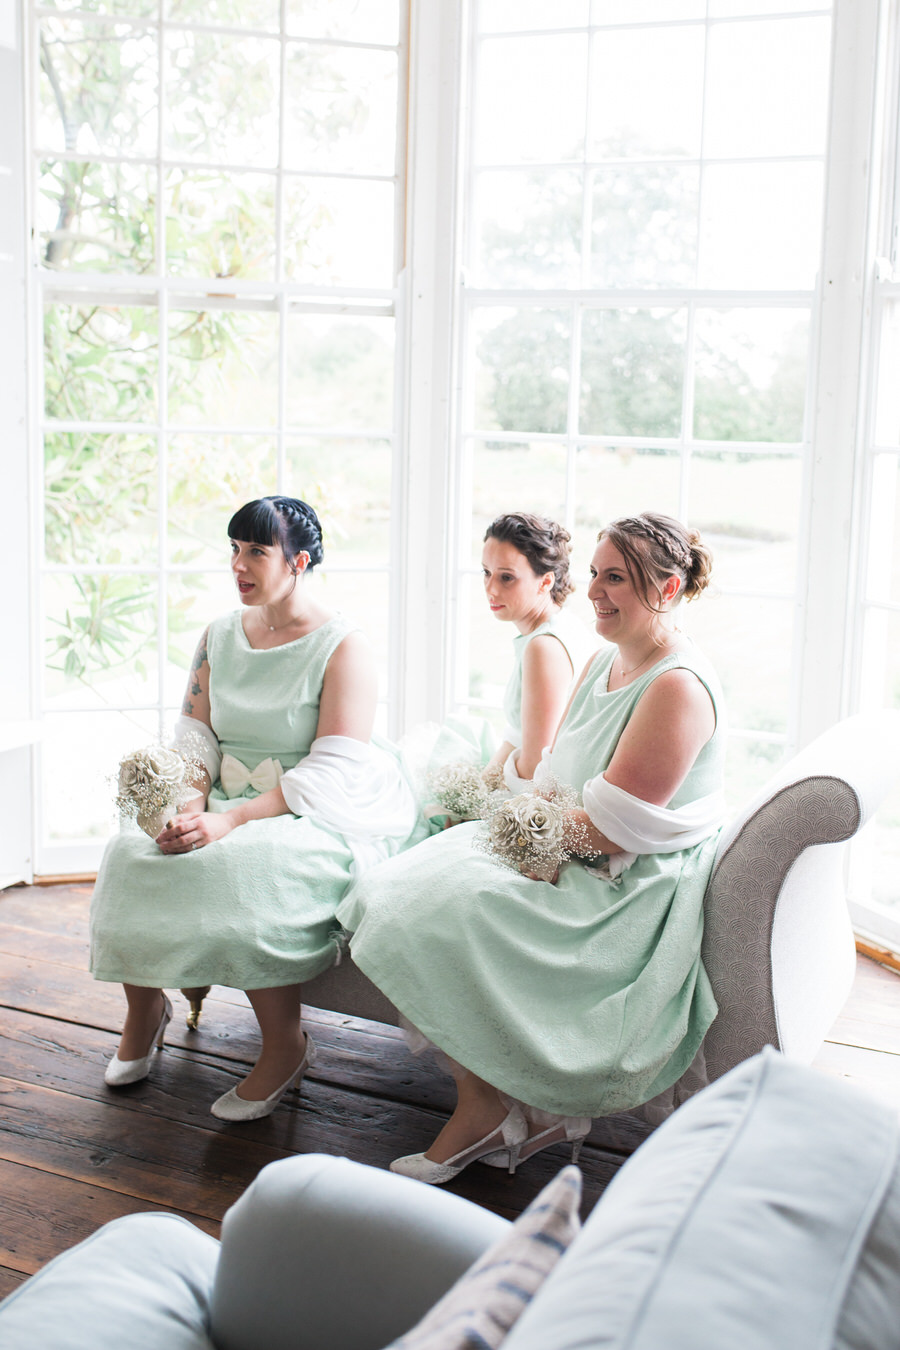 Vintage wedding ideas at The Great Lodge Essex with Gemma Giorgio Photography (10)